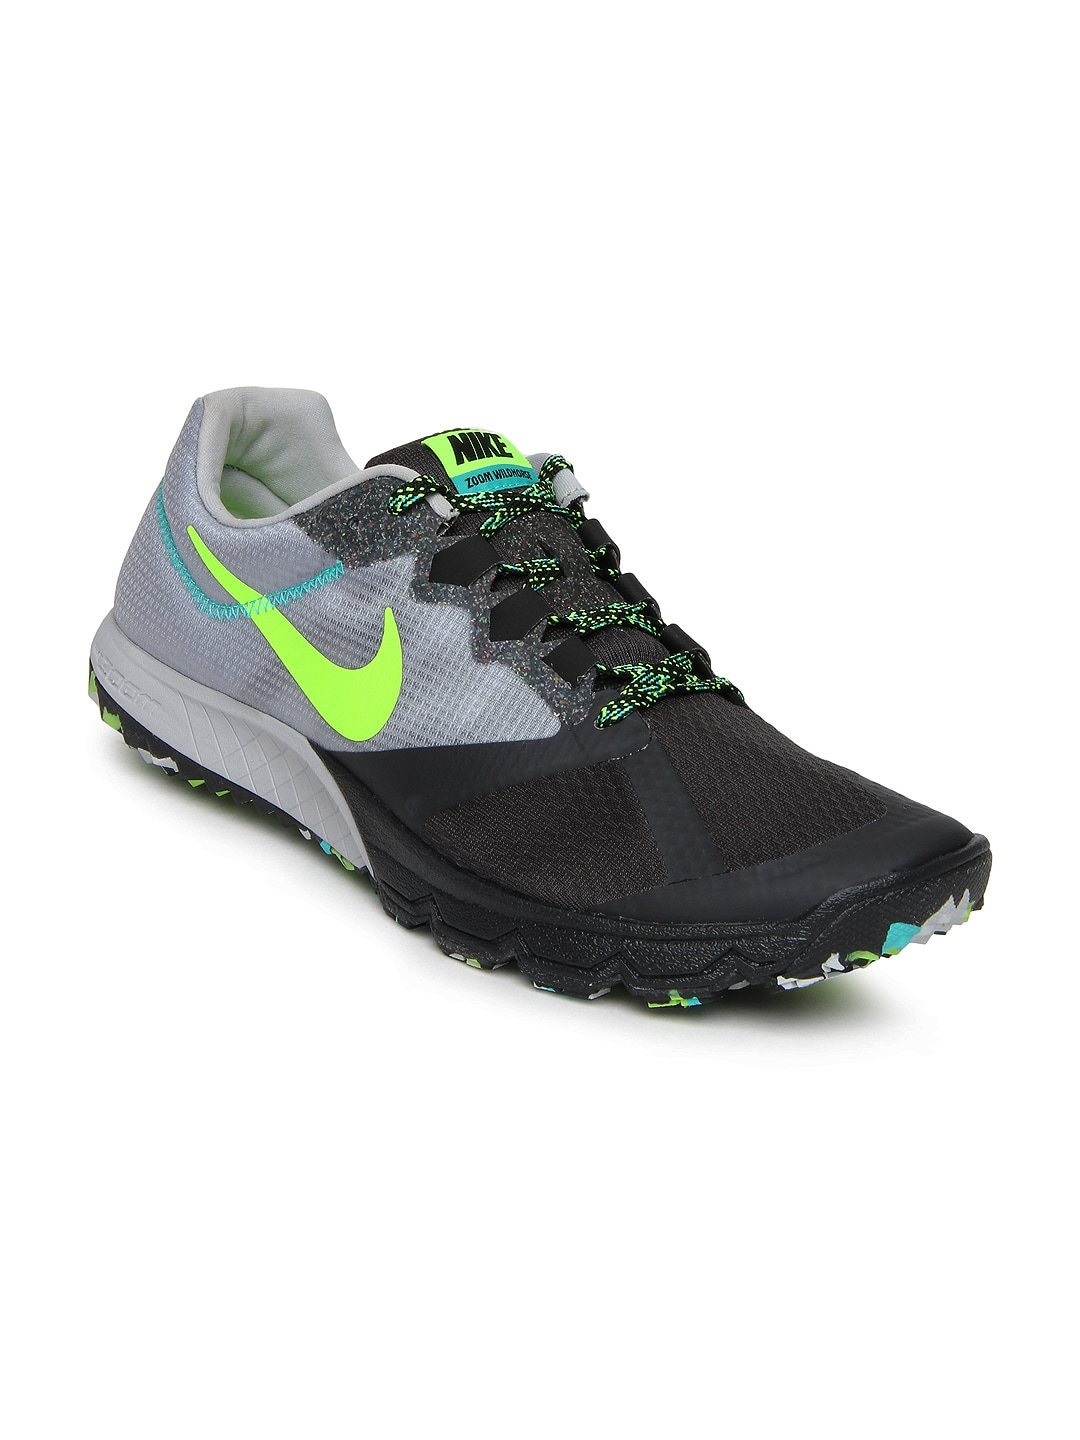 Nike Dynamic Support Shoes Price